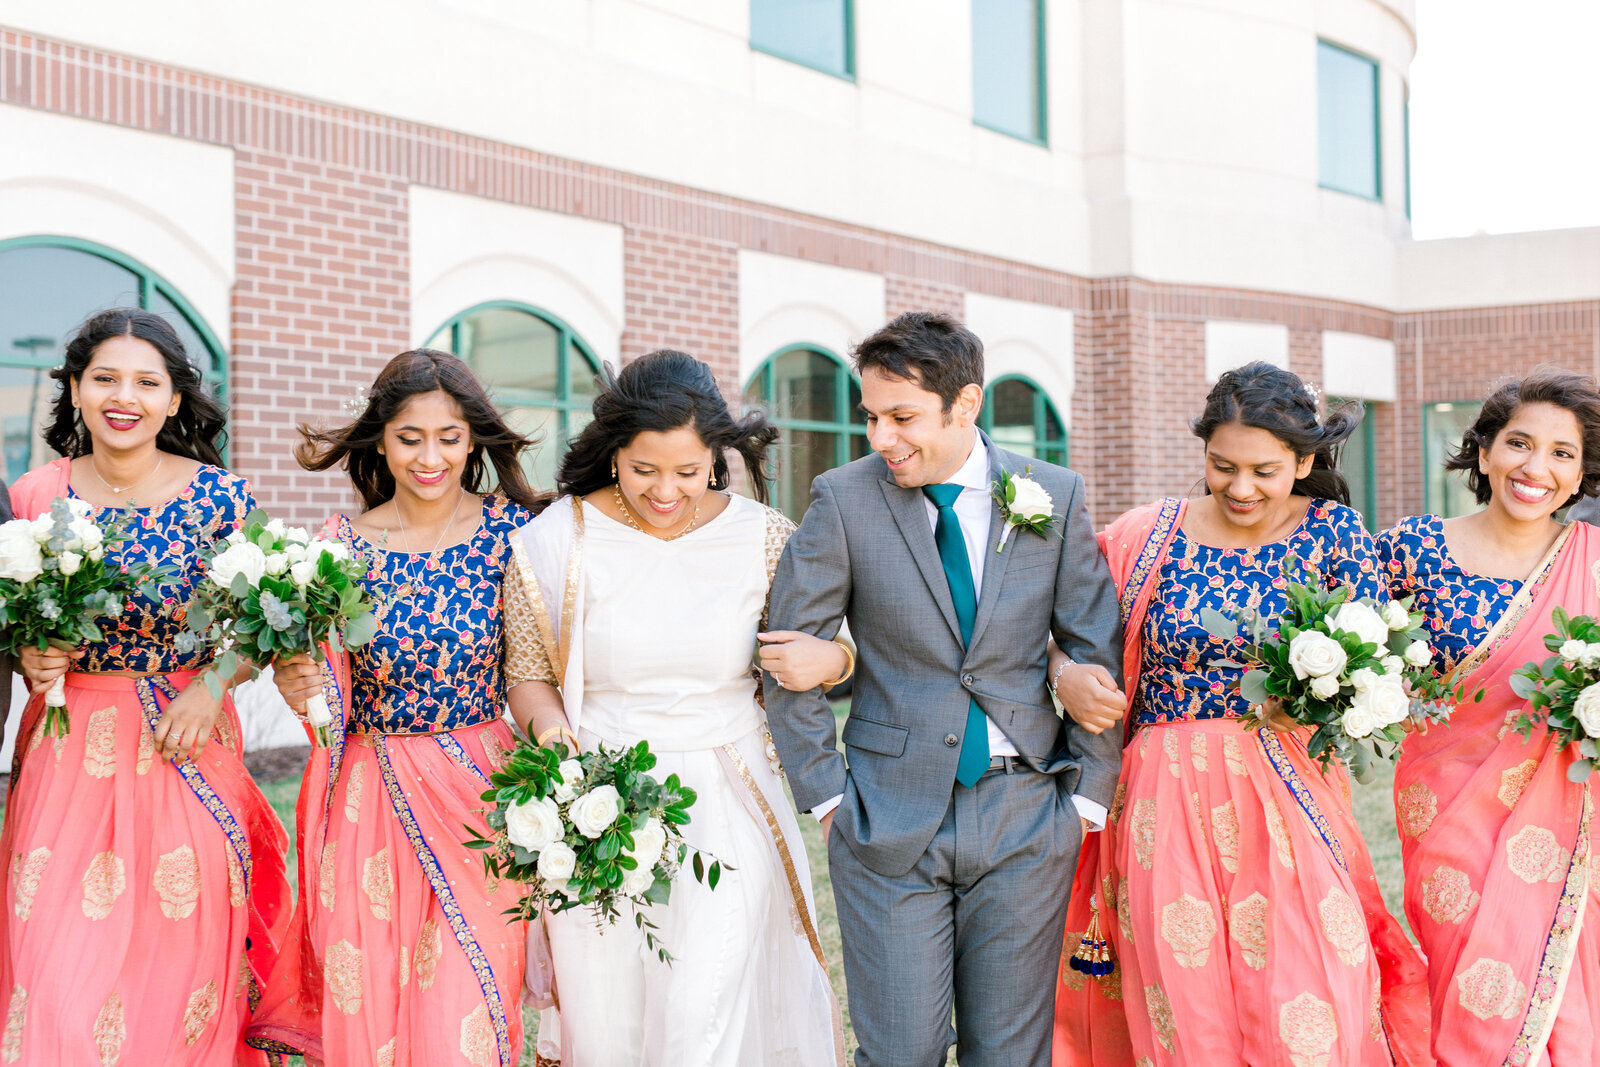 A+A_dubuque_Iowa_wedding_grand_river_center_kirstie_veatch_photography-3723